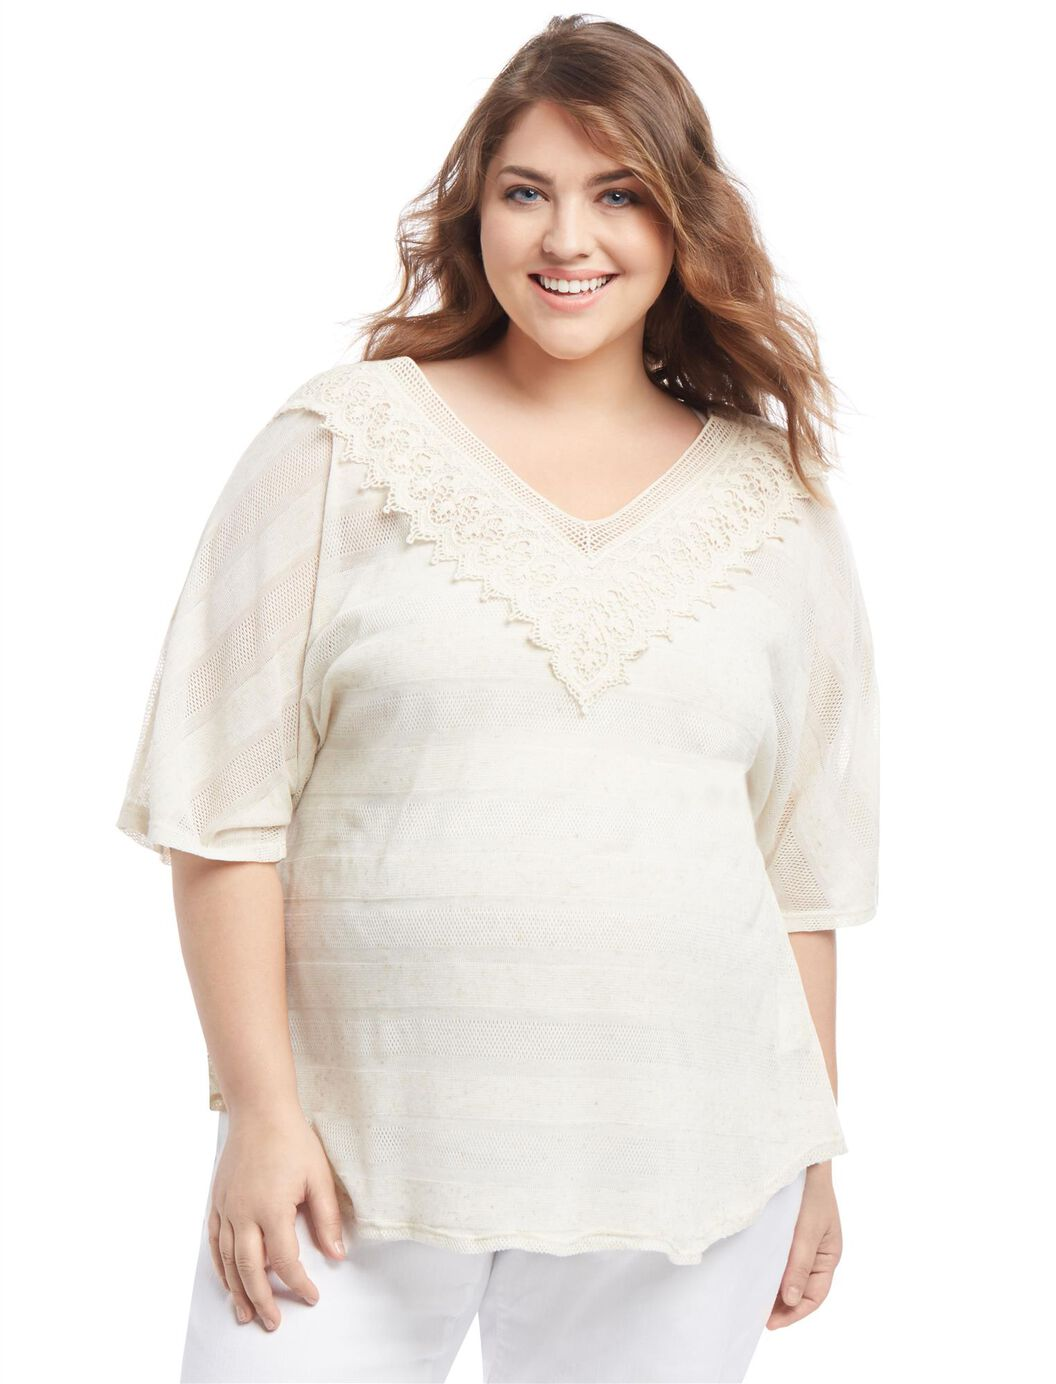 Plus Size Lace Trim Maternity T Shirt at Motherhood Maternity in Victor, NY | Tuggl